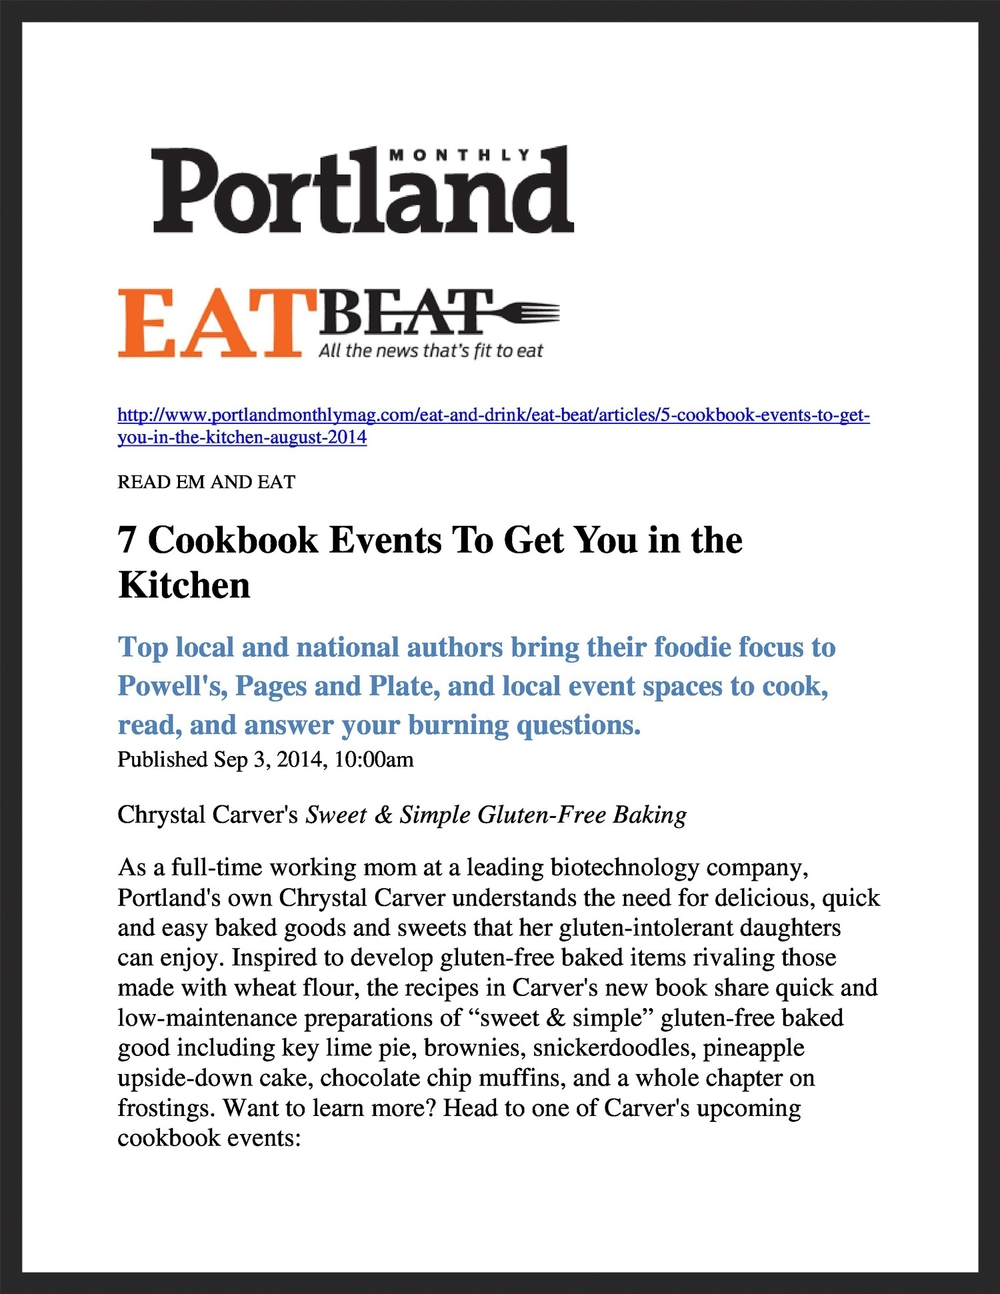 CHRYSTAL CARVER  Portland Monthly  09.03.2014